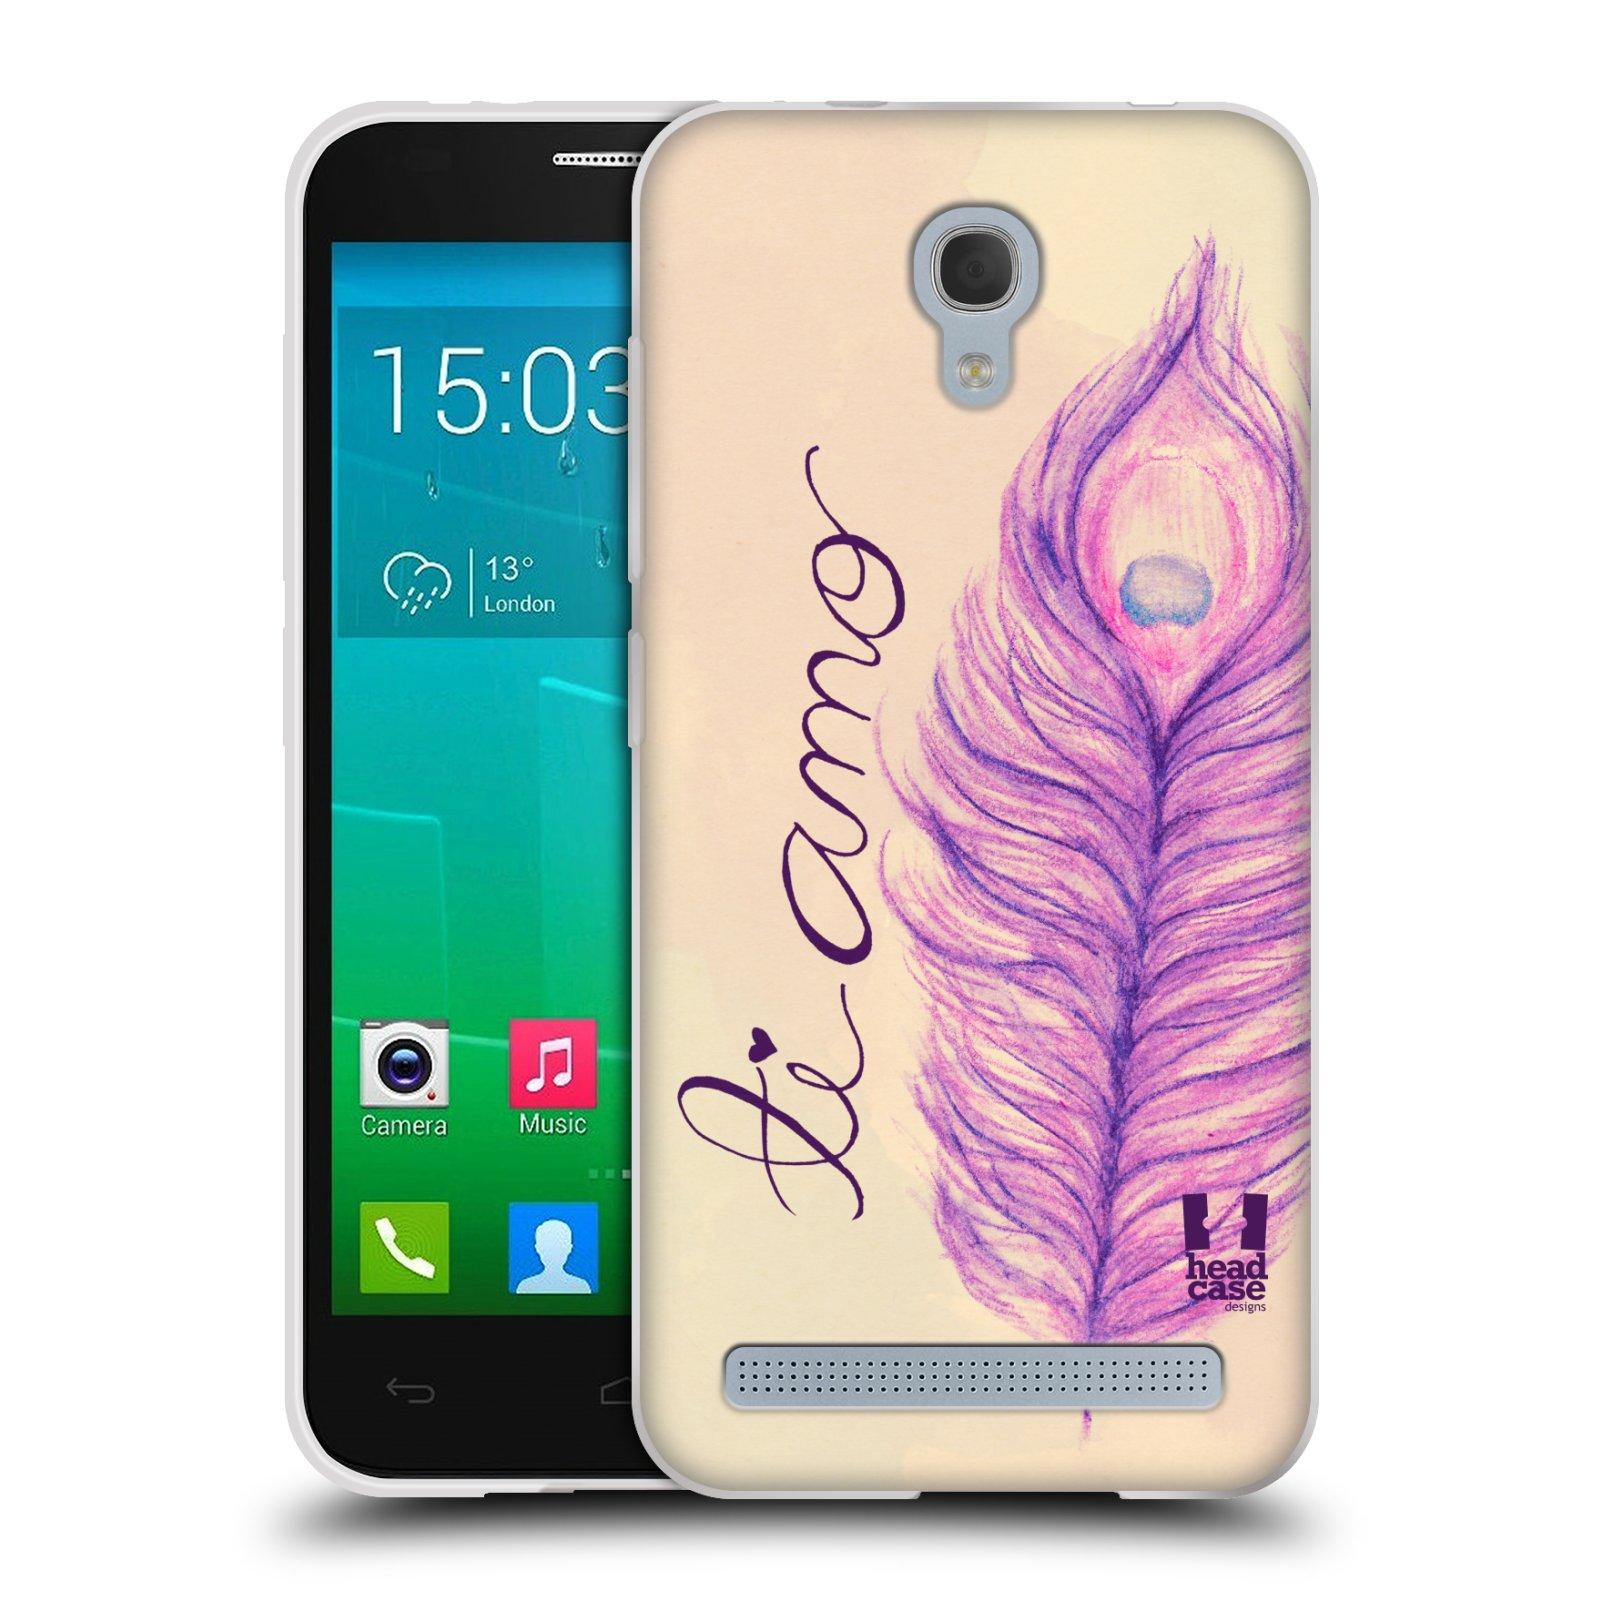 Silikonové pouzdro na mobil Alcatel One Touch Idol 2 Mini S 6036Y HEAD CASE PÍRKA TI AMO